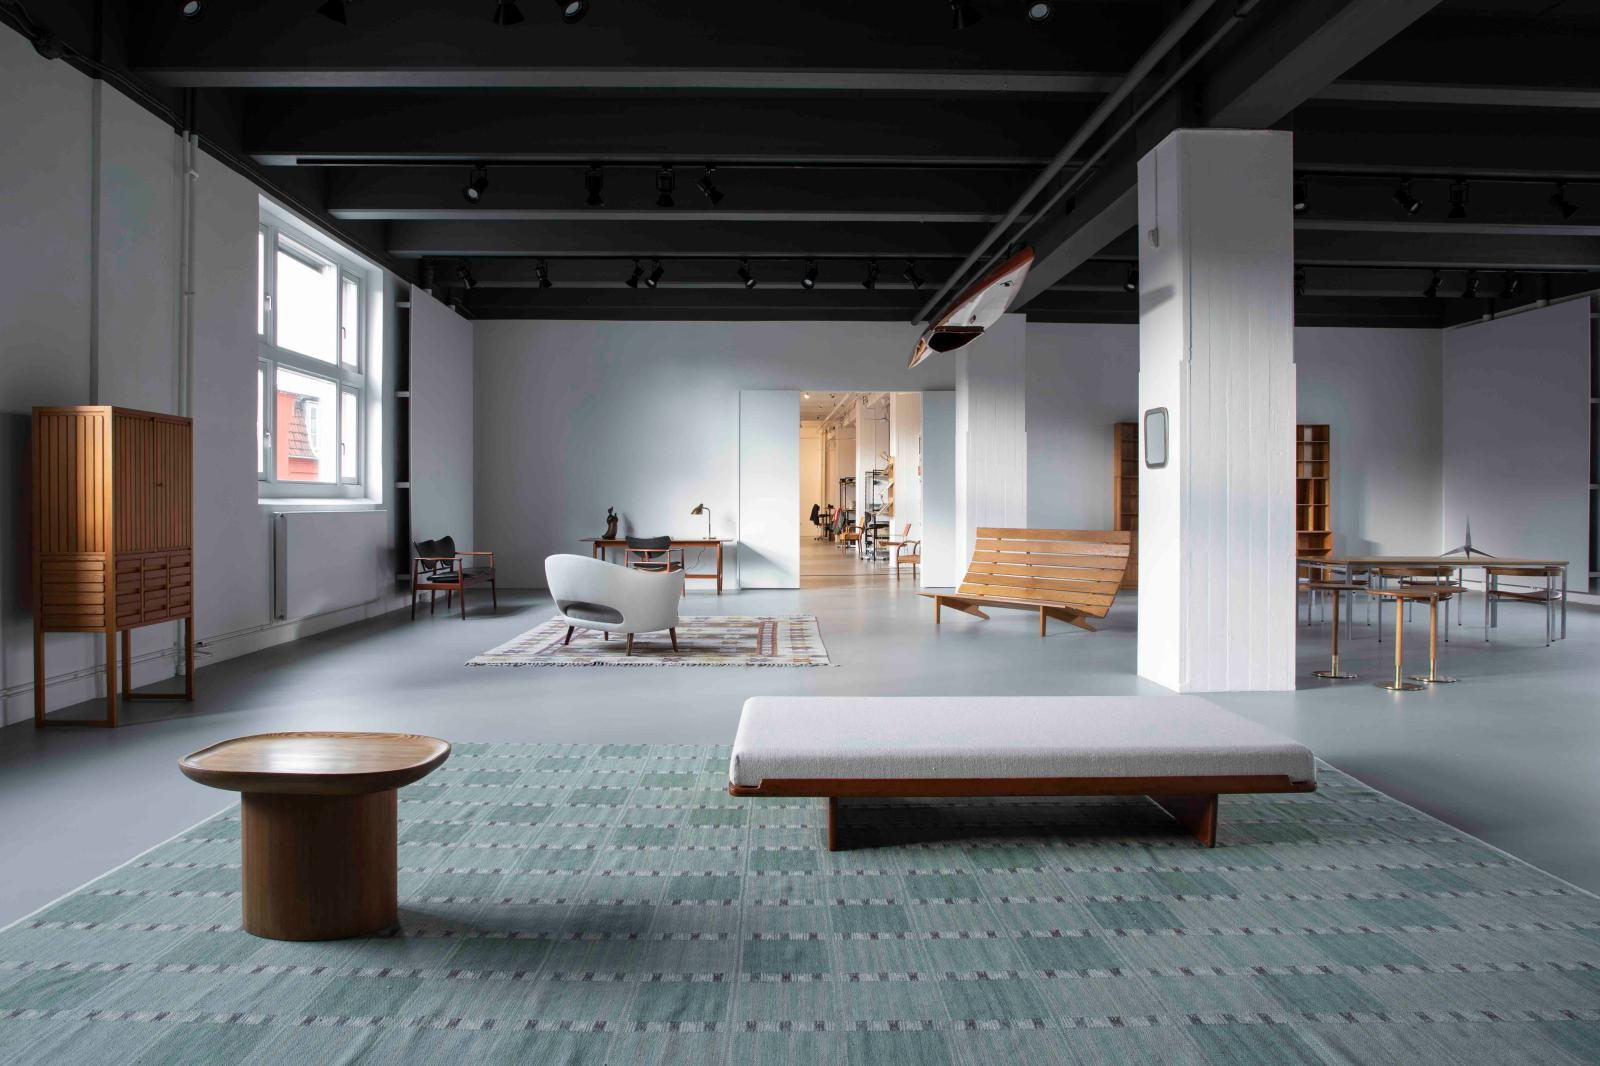 The Dansk Møbelkunst gallery in Copenhagen contains a showroom, a furniture restoration workshop and archives on Danish furniture designers and factor